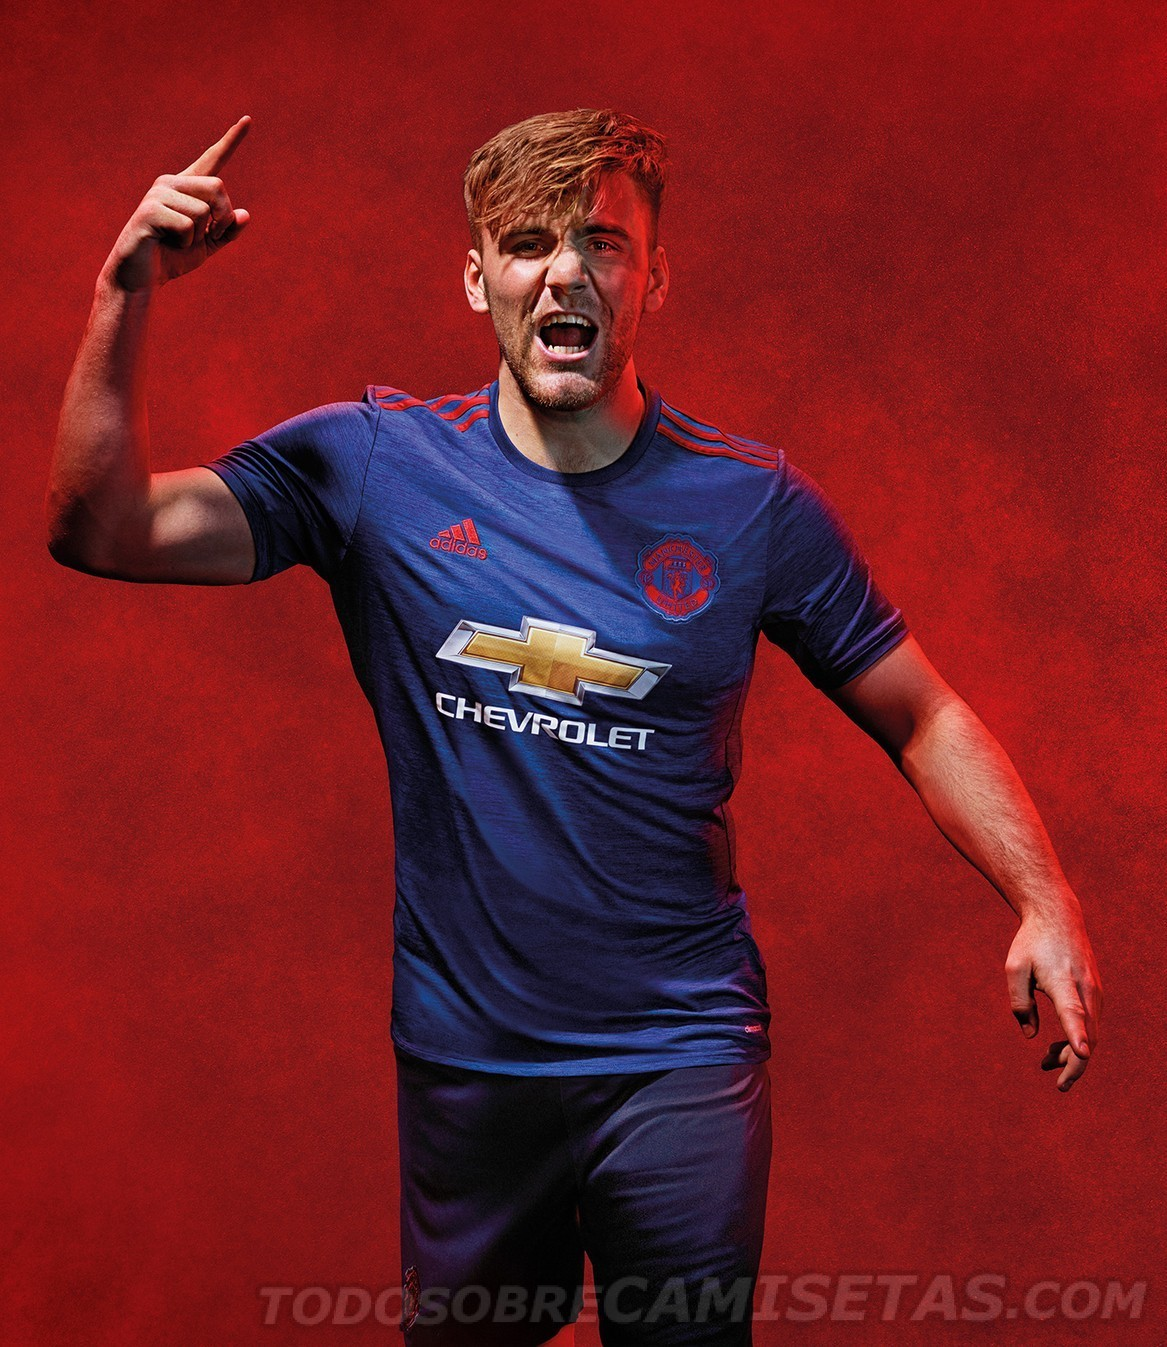 Manchester-United-2016-17-adidas-new-away-kit-9.jpg